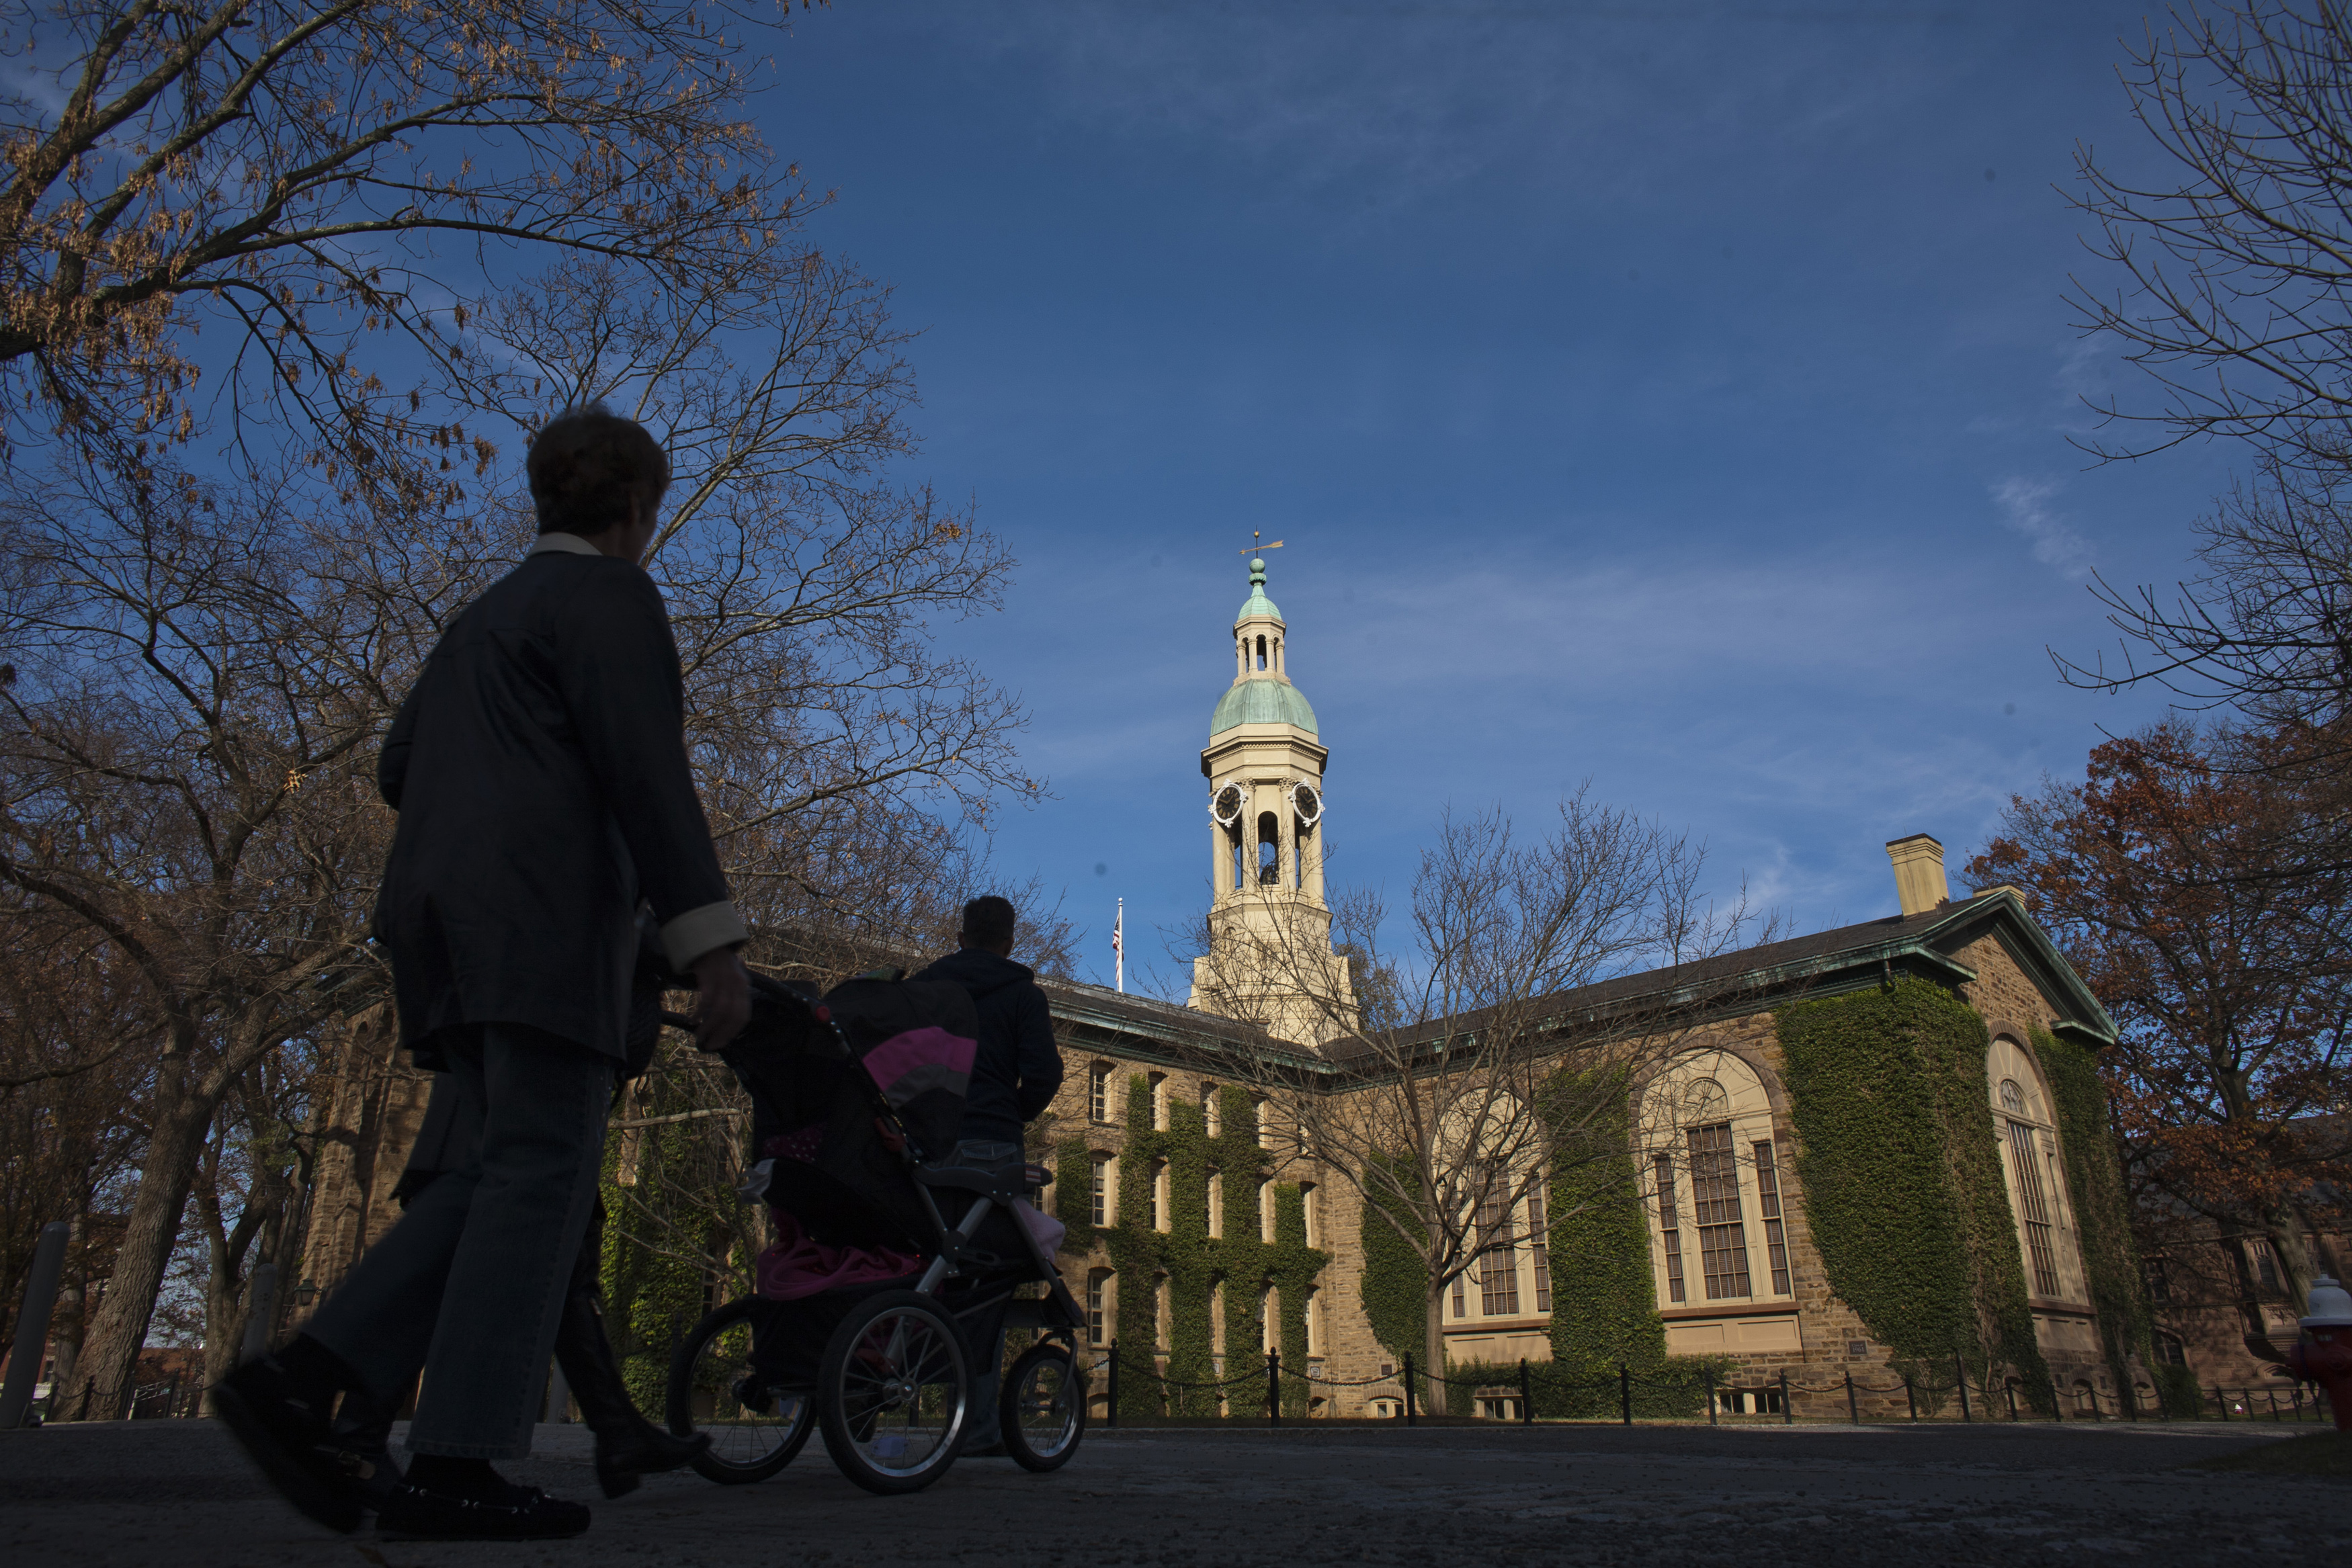 Princeton drops Woodrow Wilson's name from school due to 'racist thinking' thumbnail